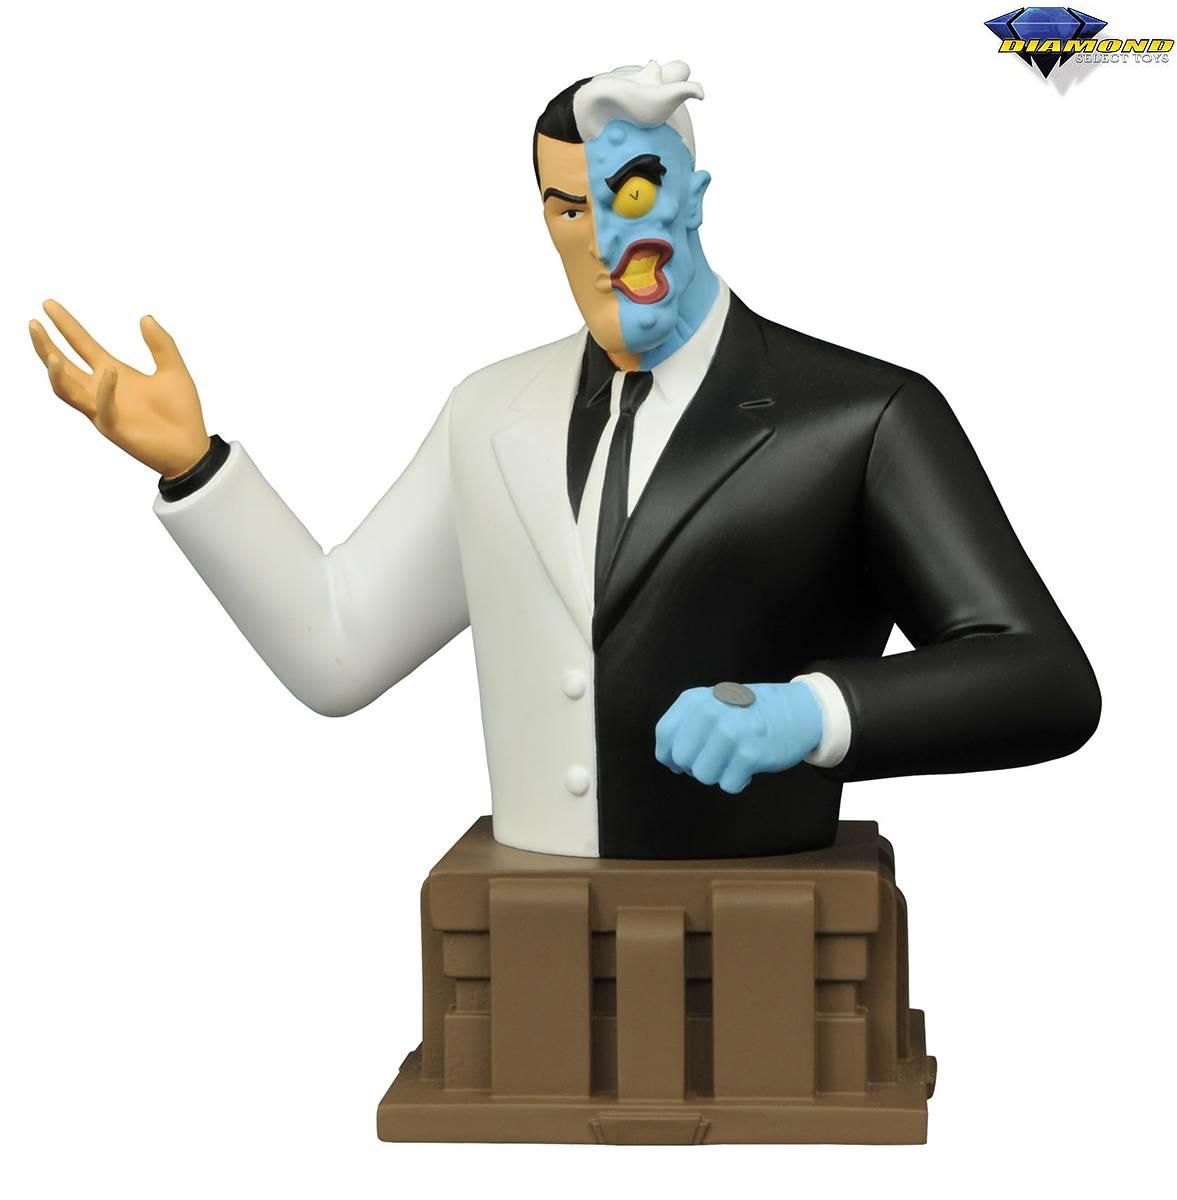 Diamond DC Comics Batman Animated Series Two-Face Bust